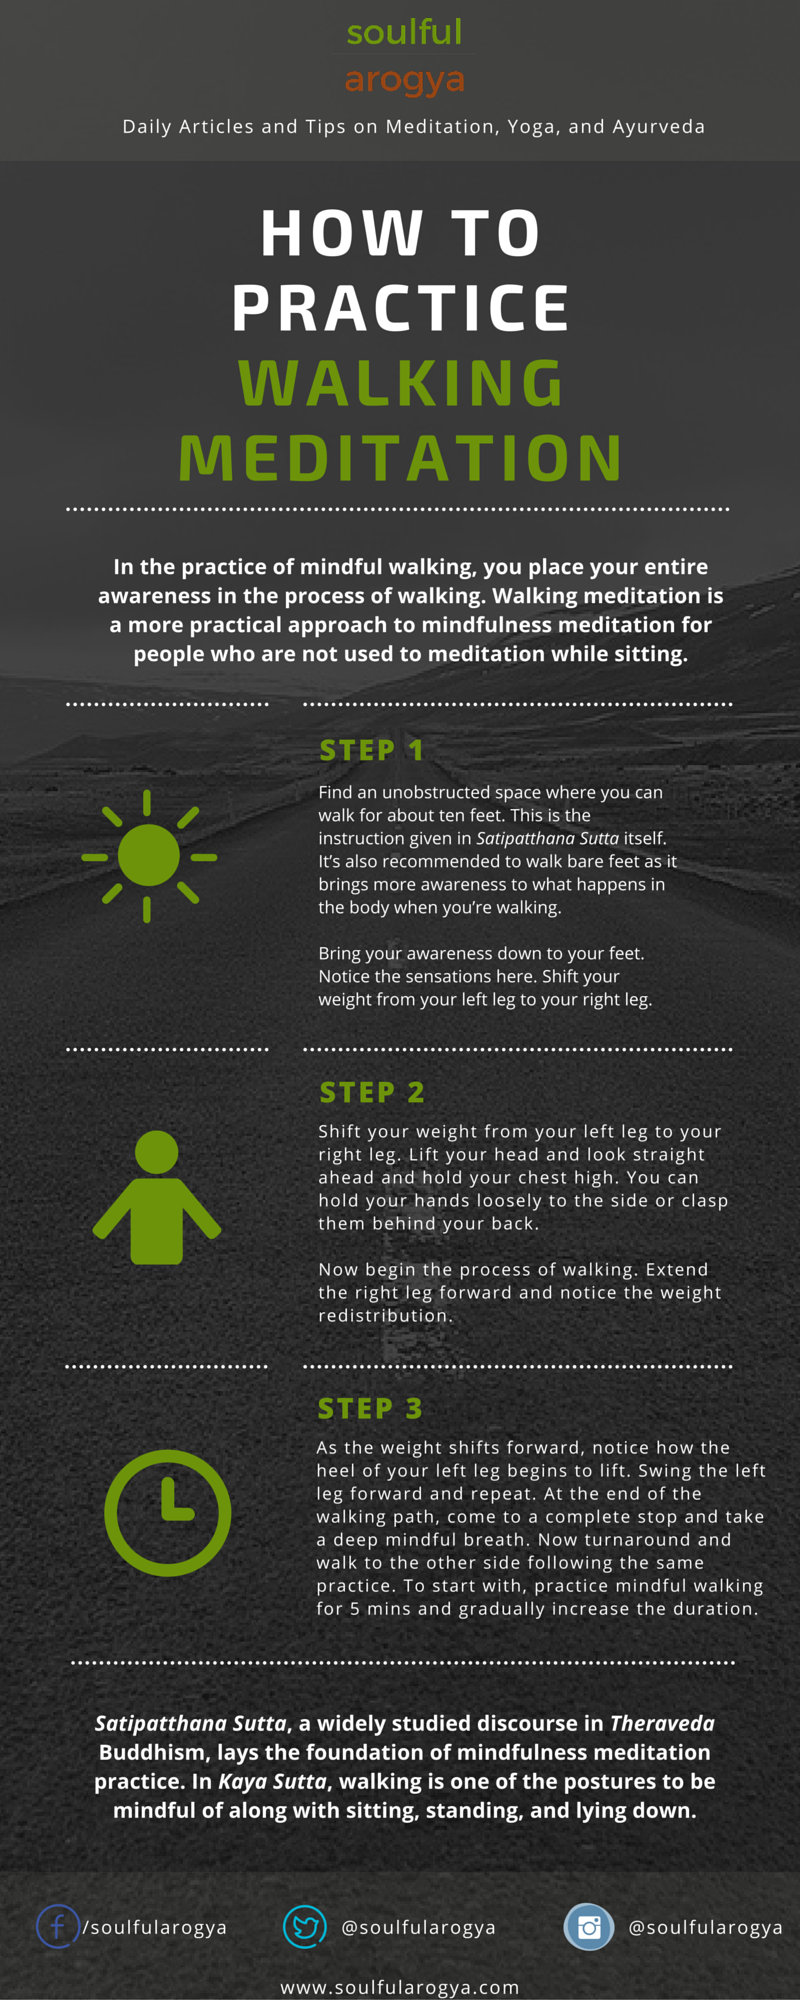 Mindful Walking Meditation: How to Do It - Infographic